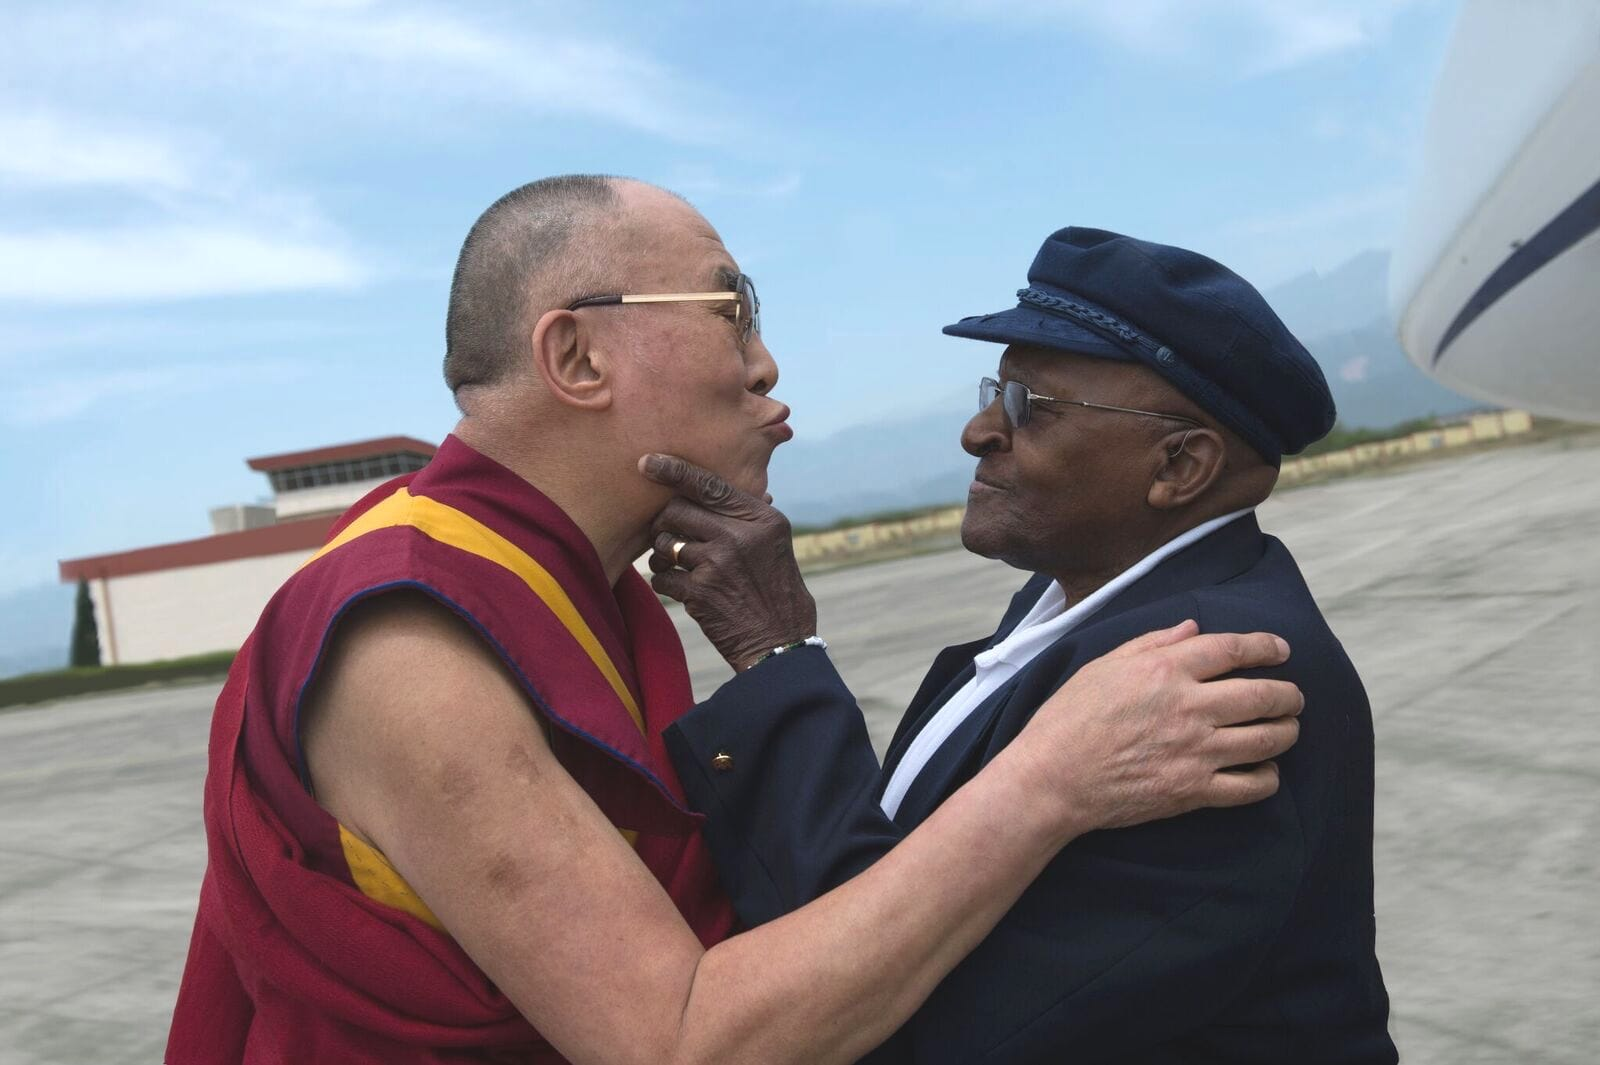 The Dalai Lama and Archbishop Desmond Tutu: the joy abounds. Photo by Tenzin Choejor.